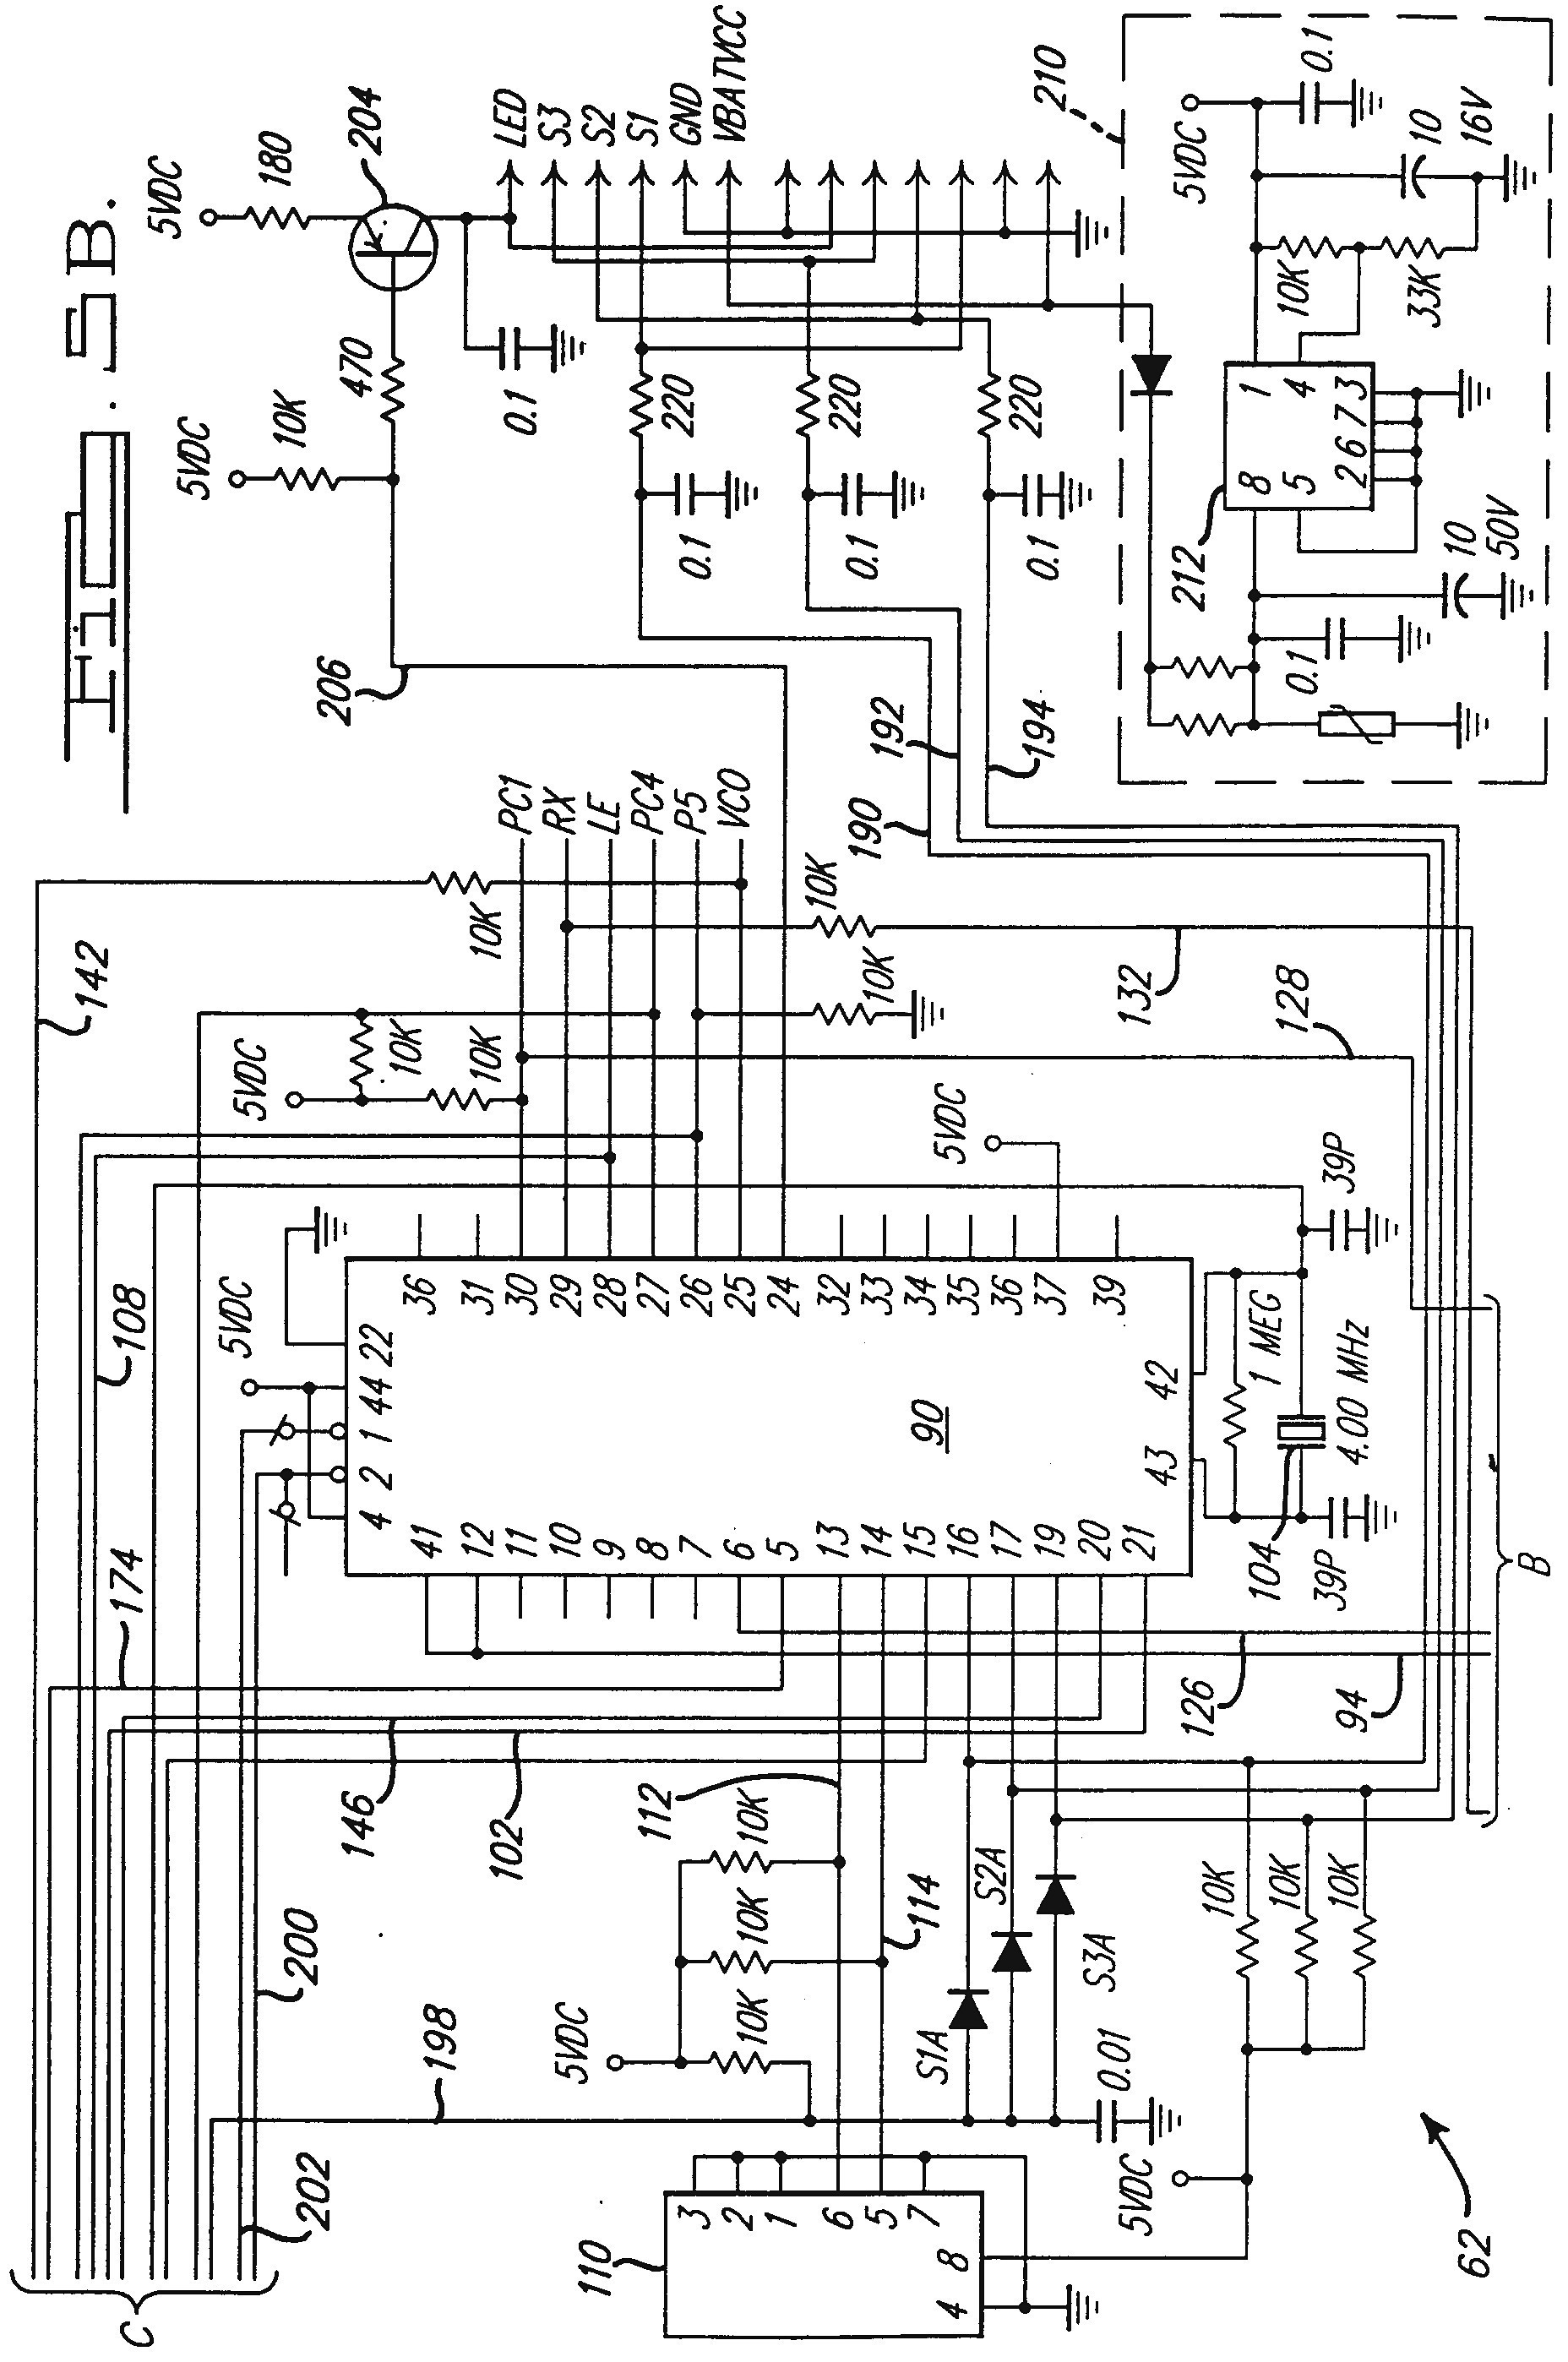 wiring diagram for genie garage door opener free download wiring